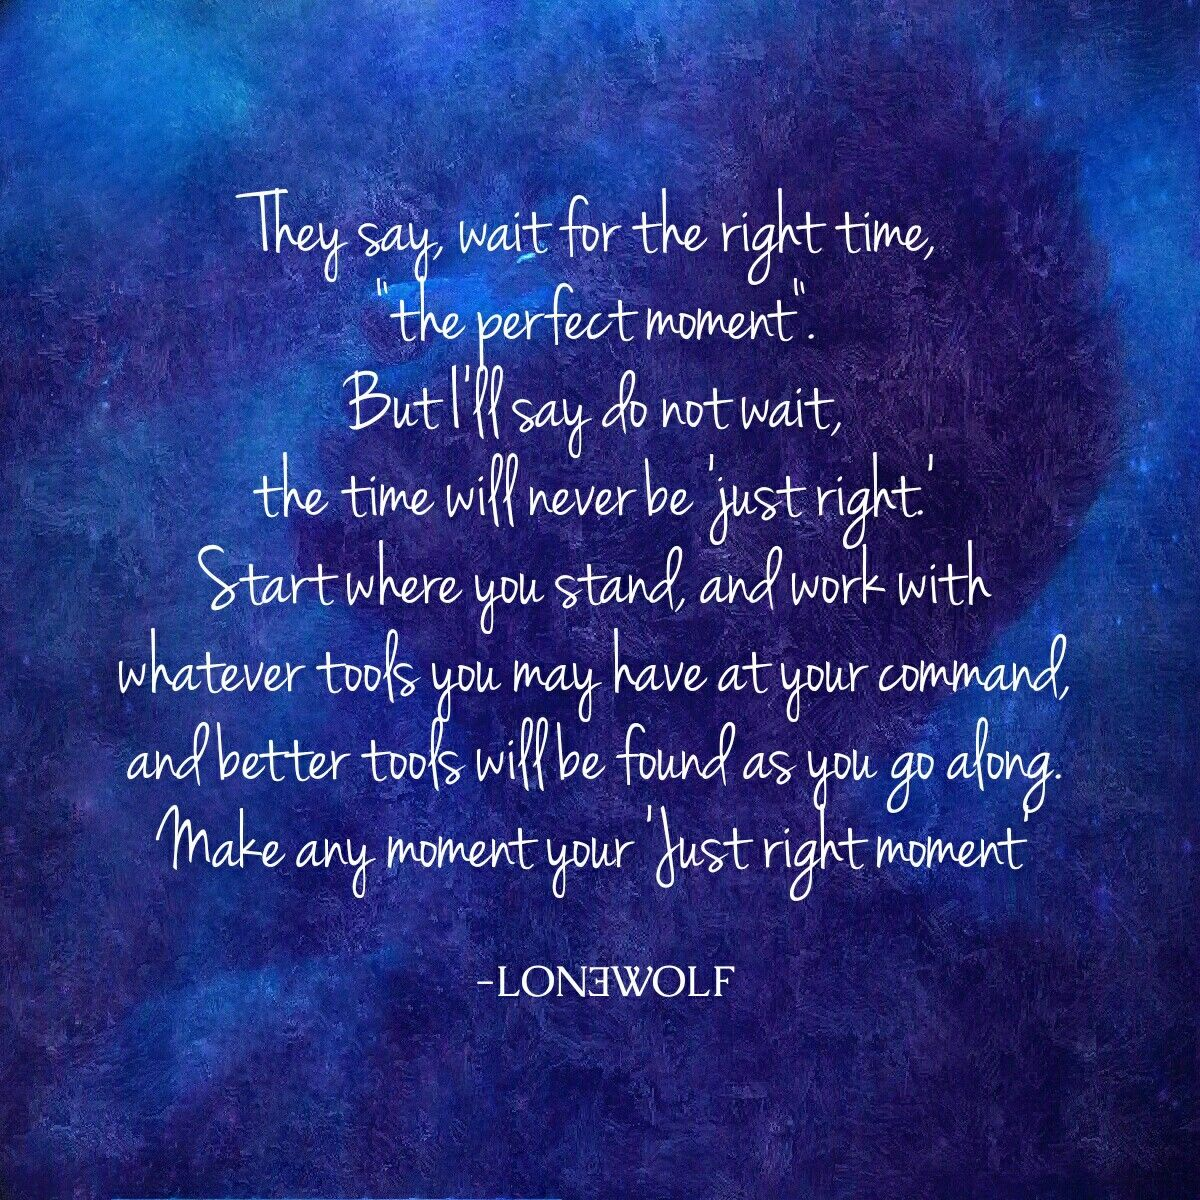 Lonǝwolf Life Quote Motivational Quote Life Quotes Motivational Quotes Unspoken Words